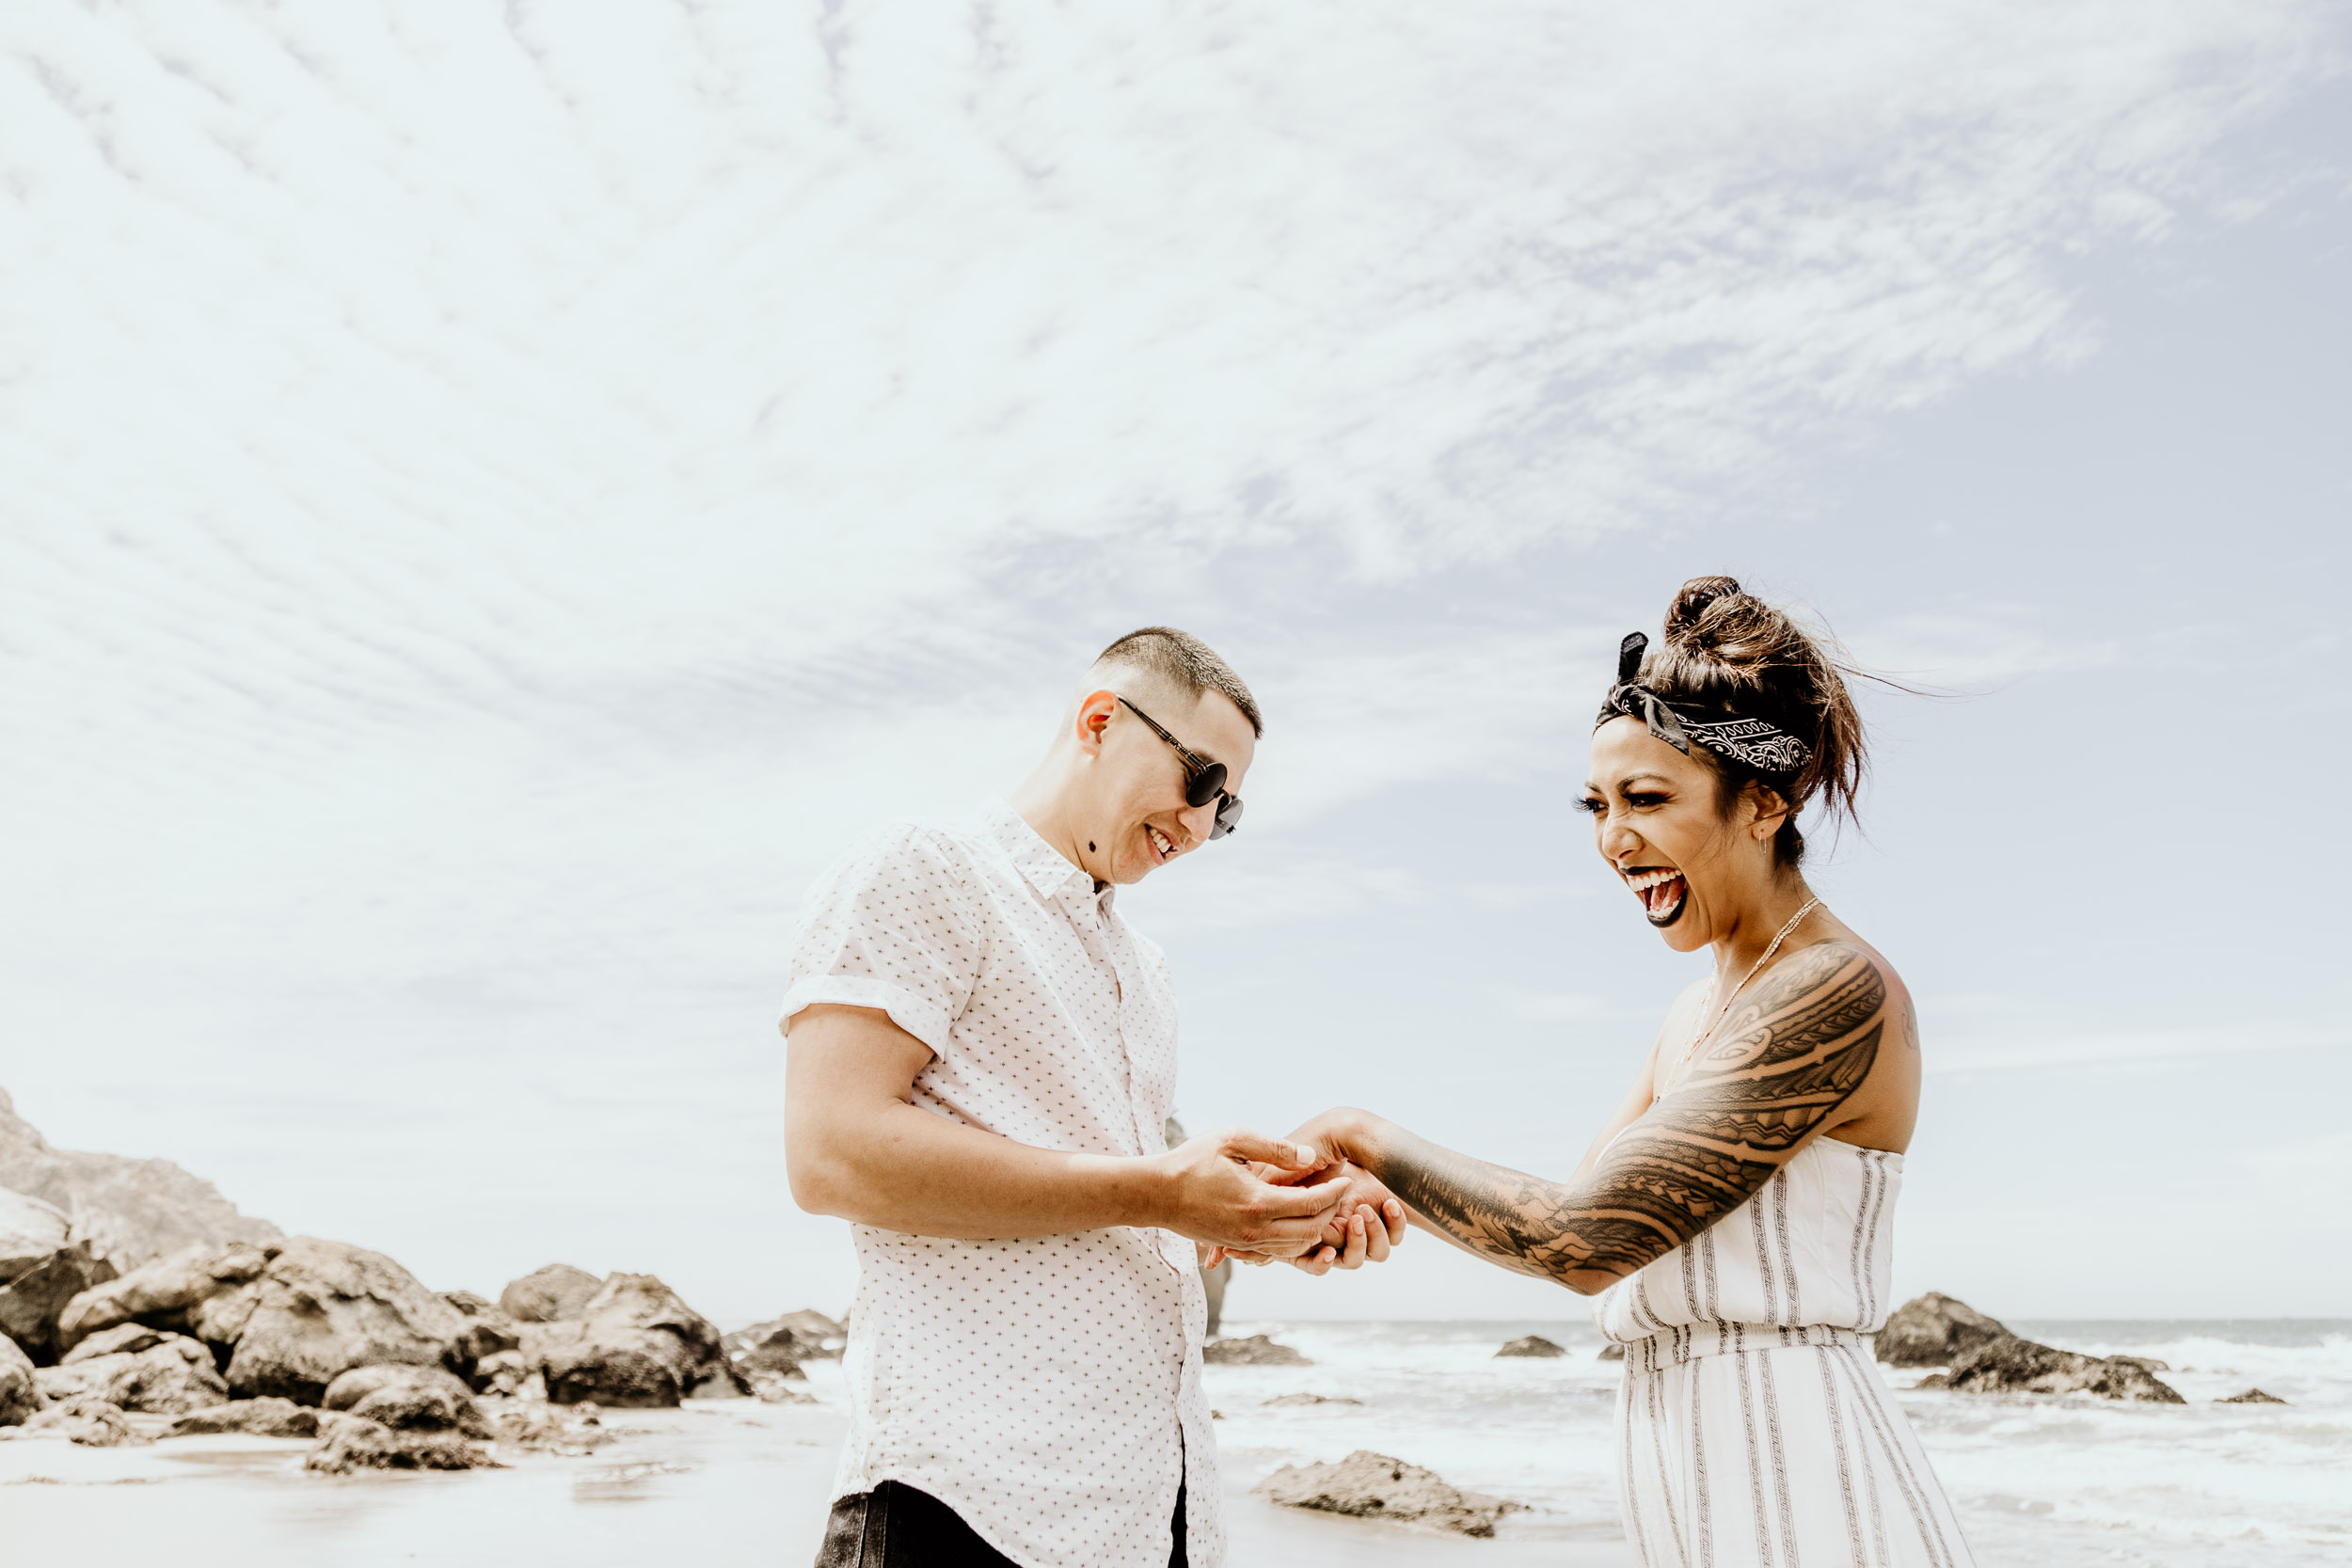 intimate-wedding-elopement-photographer-ottawa-joshua-tree-7192.jpg